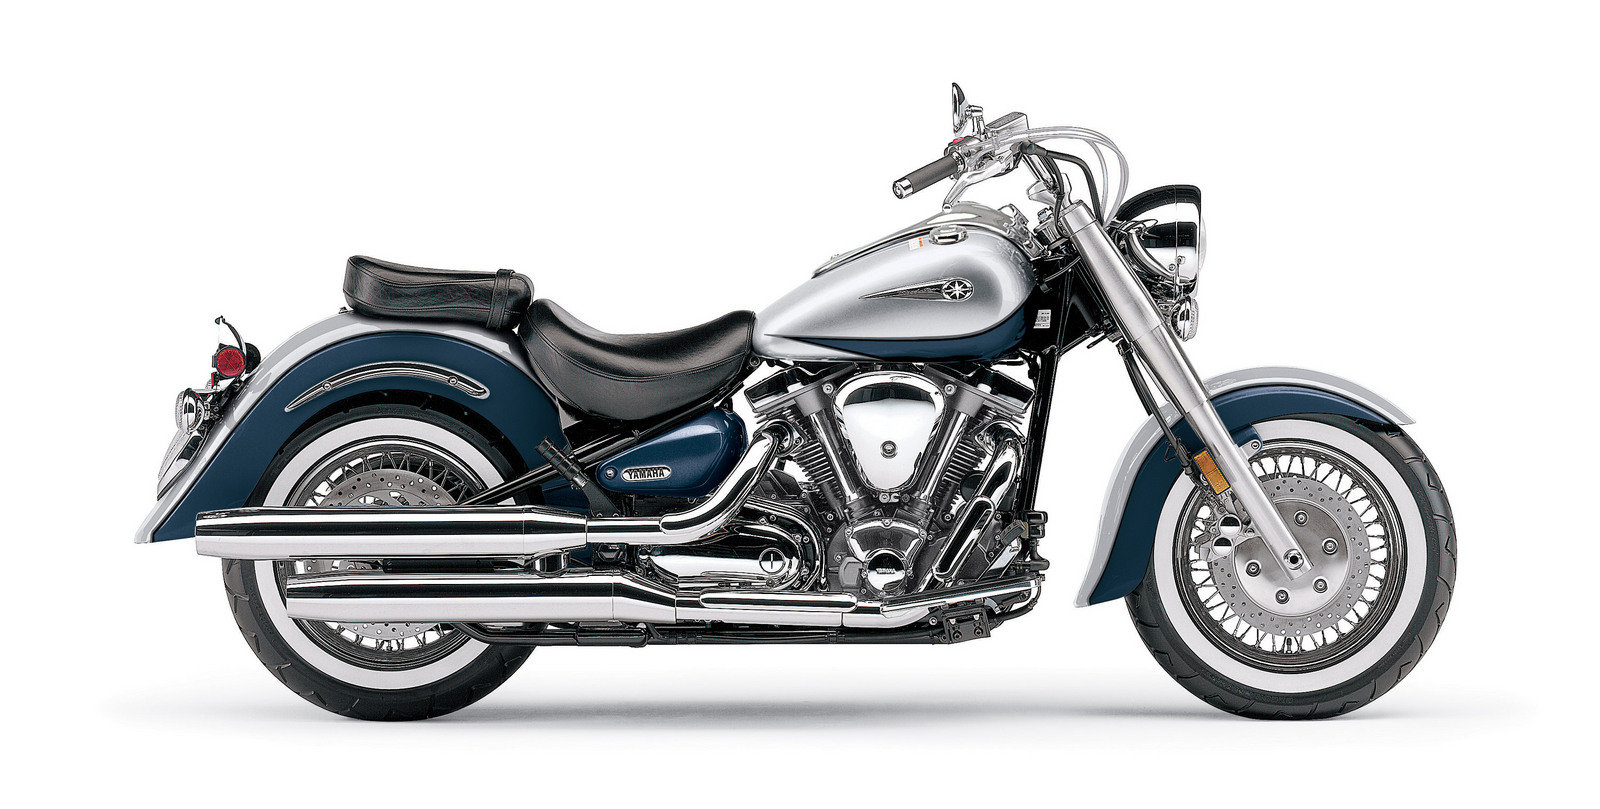 2006 yamaha road star picture 46352 motorcycle review for Yamaha road motorcycles